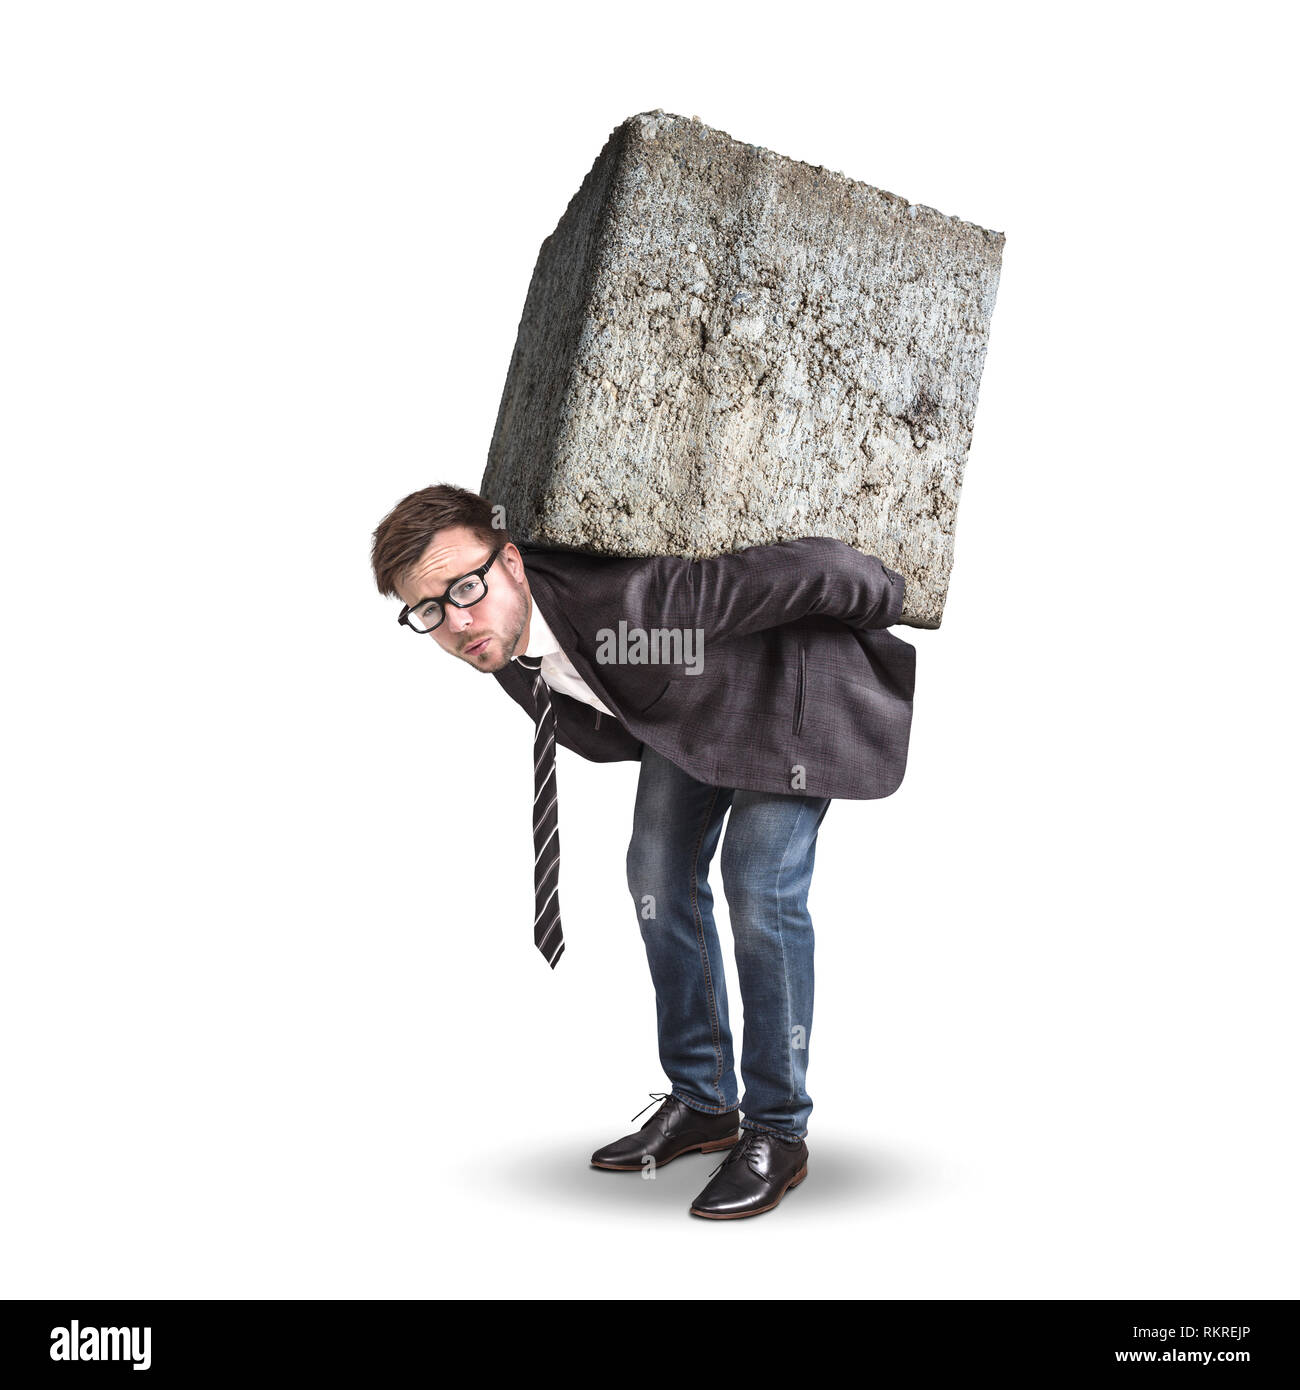 Businessman carrying a large and heavy stone on his back - Stock Image